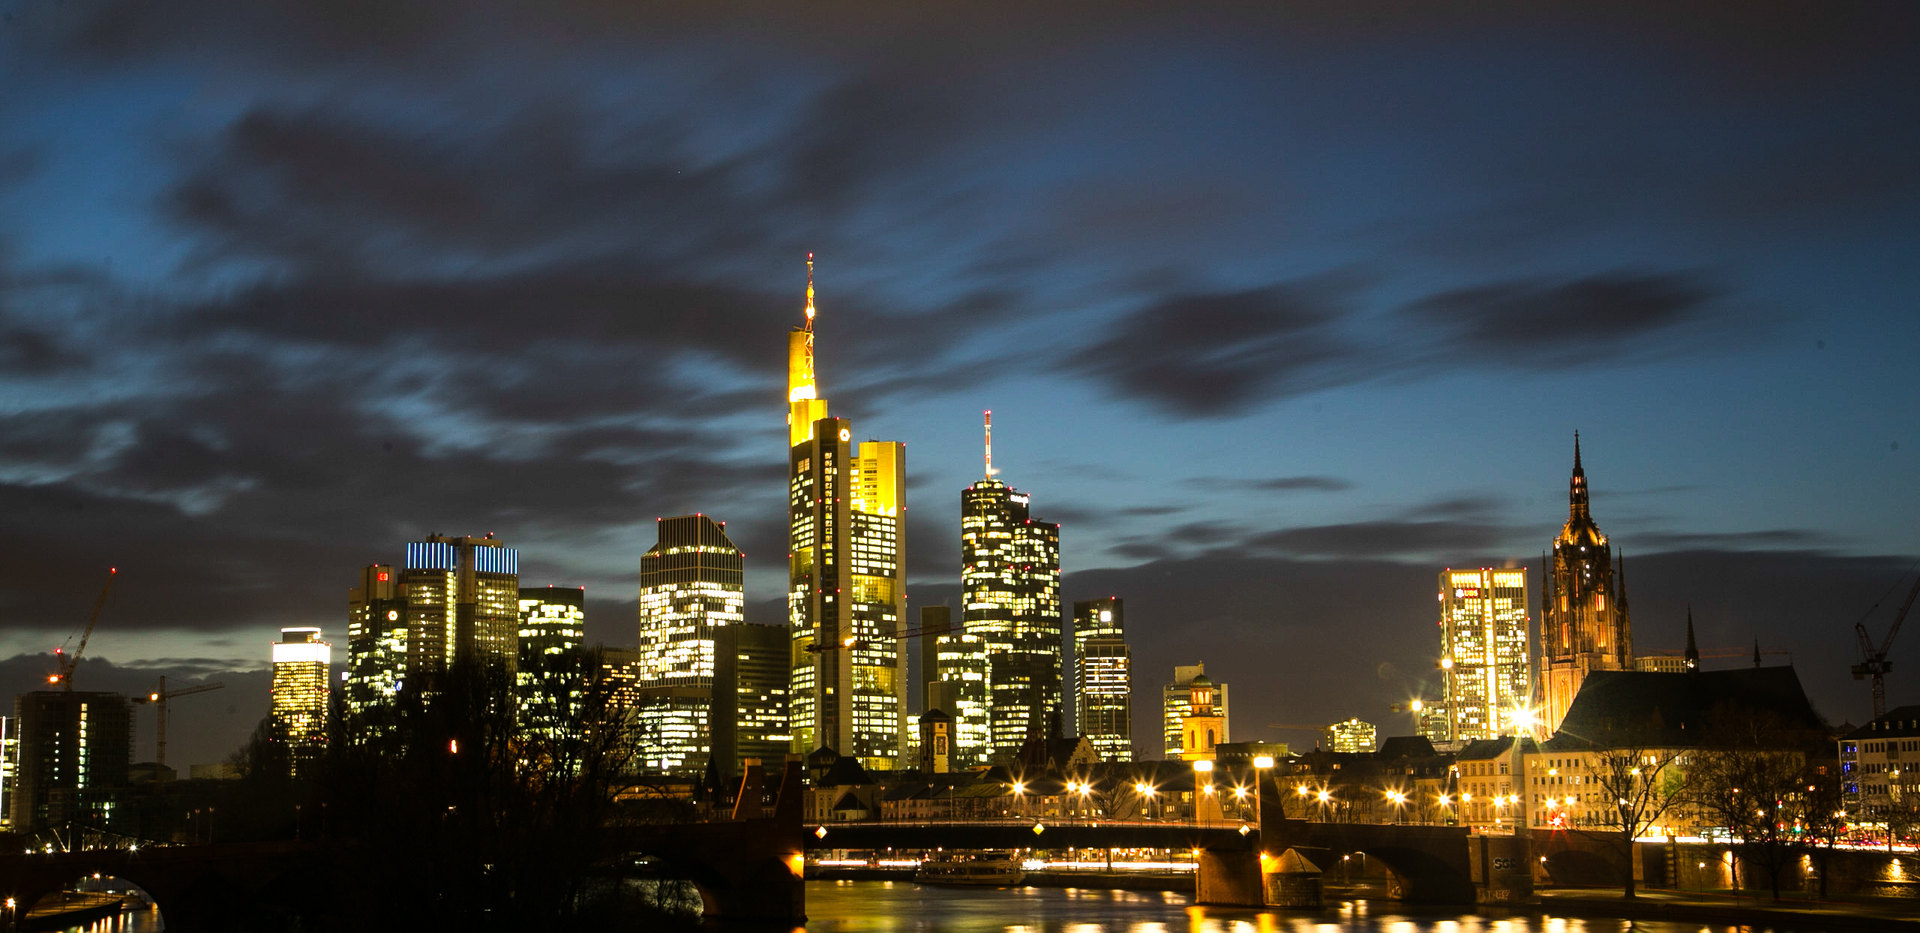 Architektur in Frankfurt | Skyline | fototouren.net